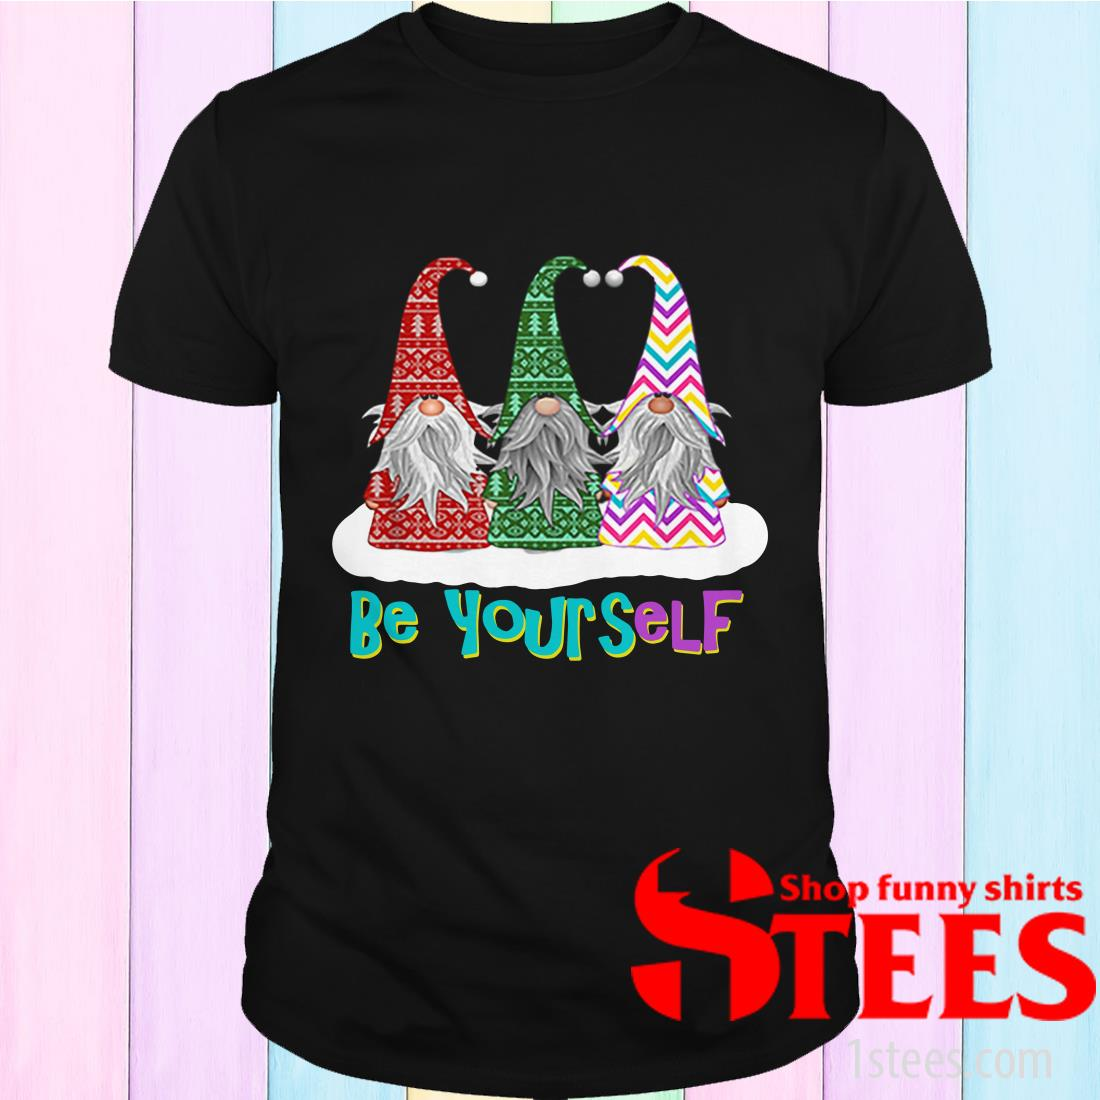 Three Gnomes Be Yours-Elf Shirt